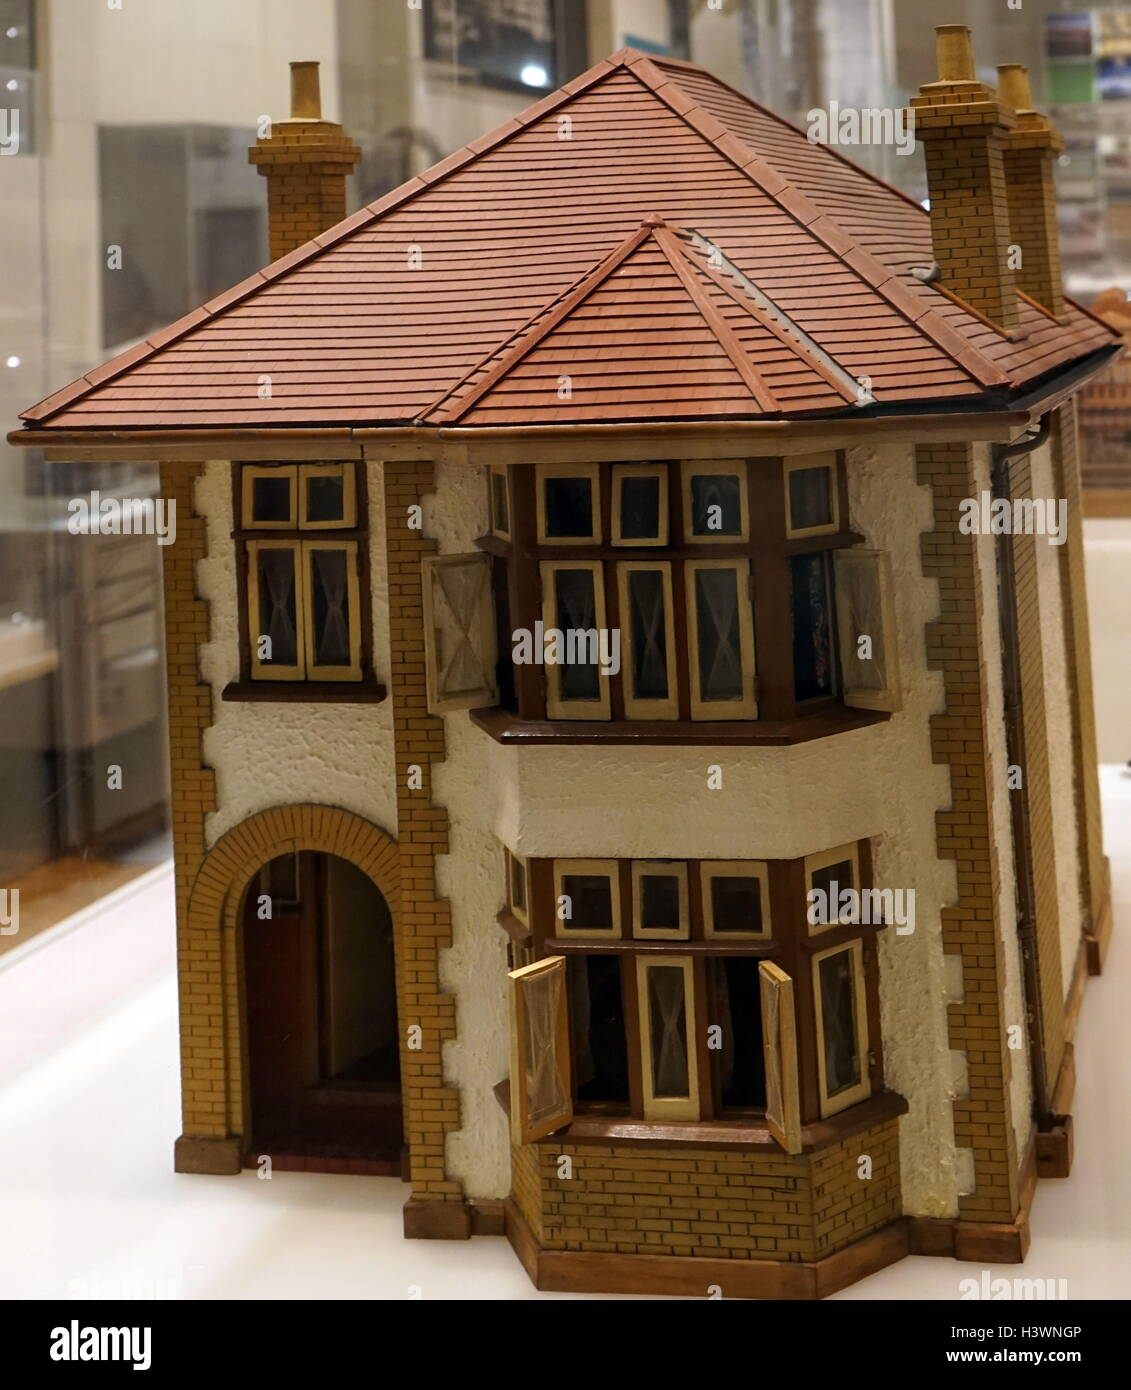 Model of a British 1930's Suburban  Home. Dated 20th Century - Stock Image